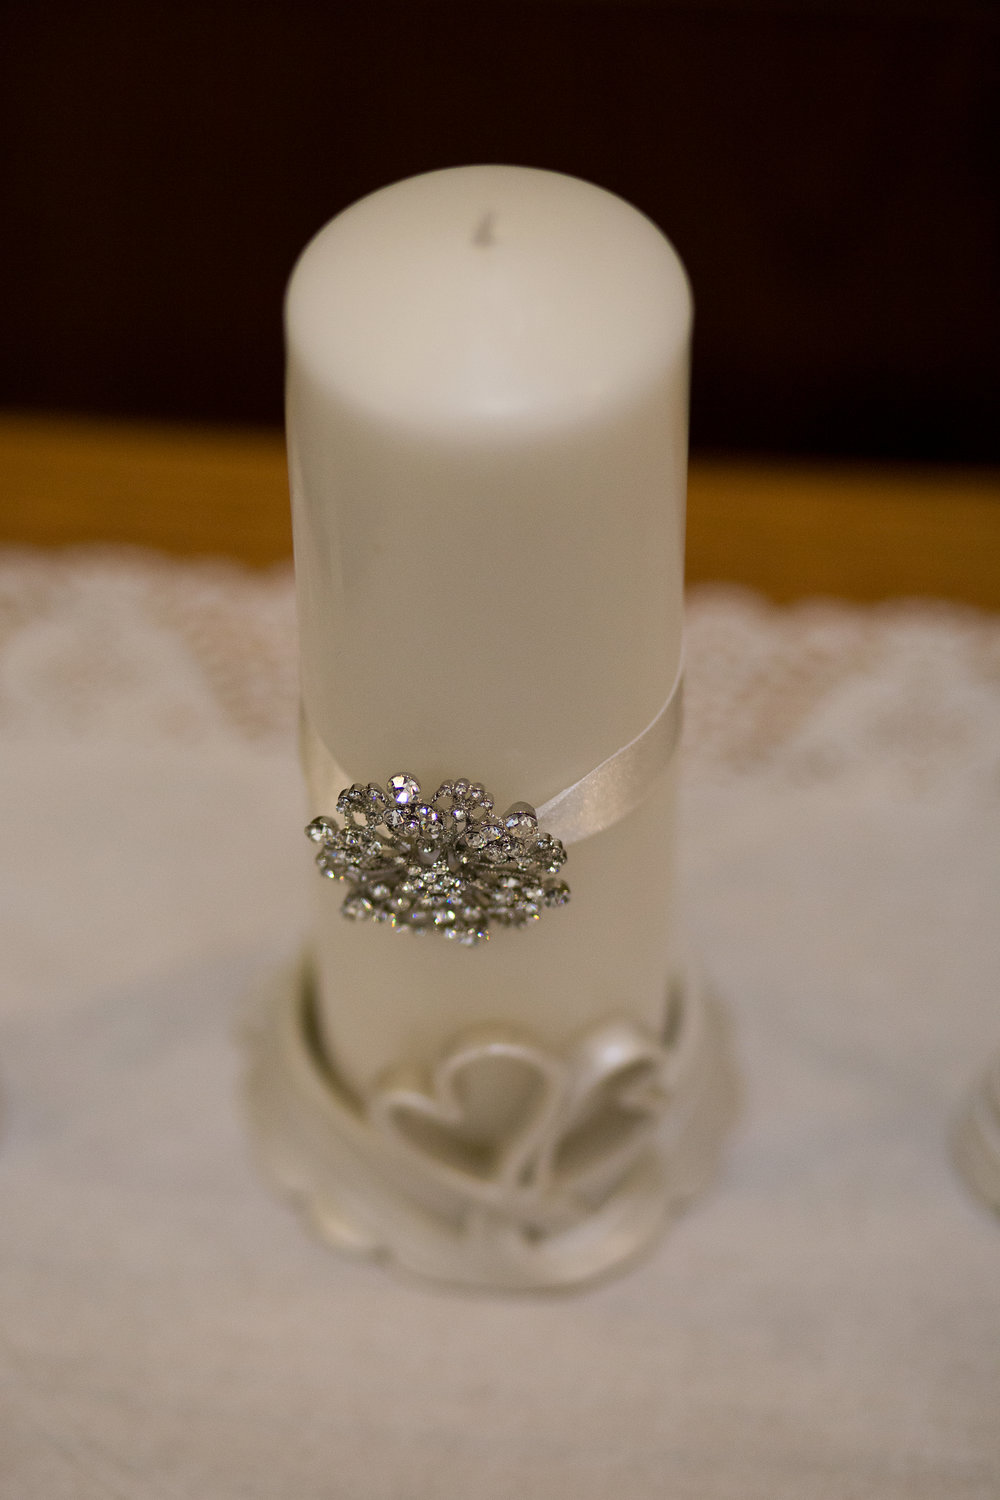 Candle for wedding at First Baptist Church in Colorado Springs Stacy Carosa Photography